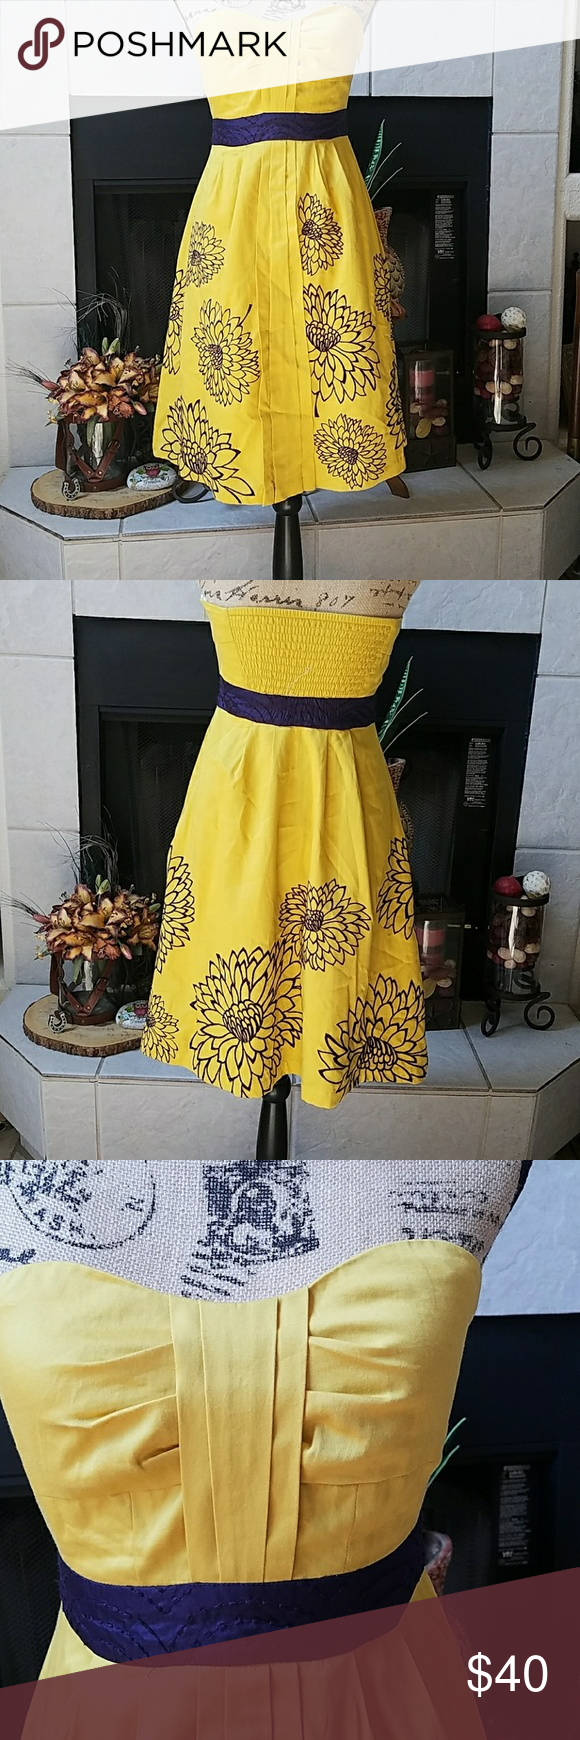 Anthropologie By Floreat Dress Pinterest Yellow Dress